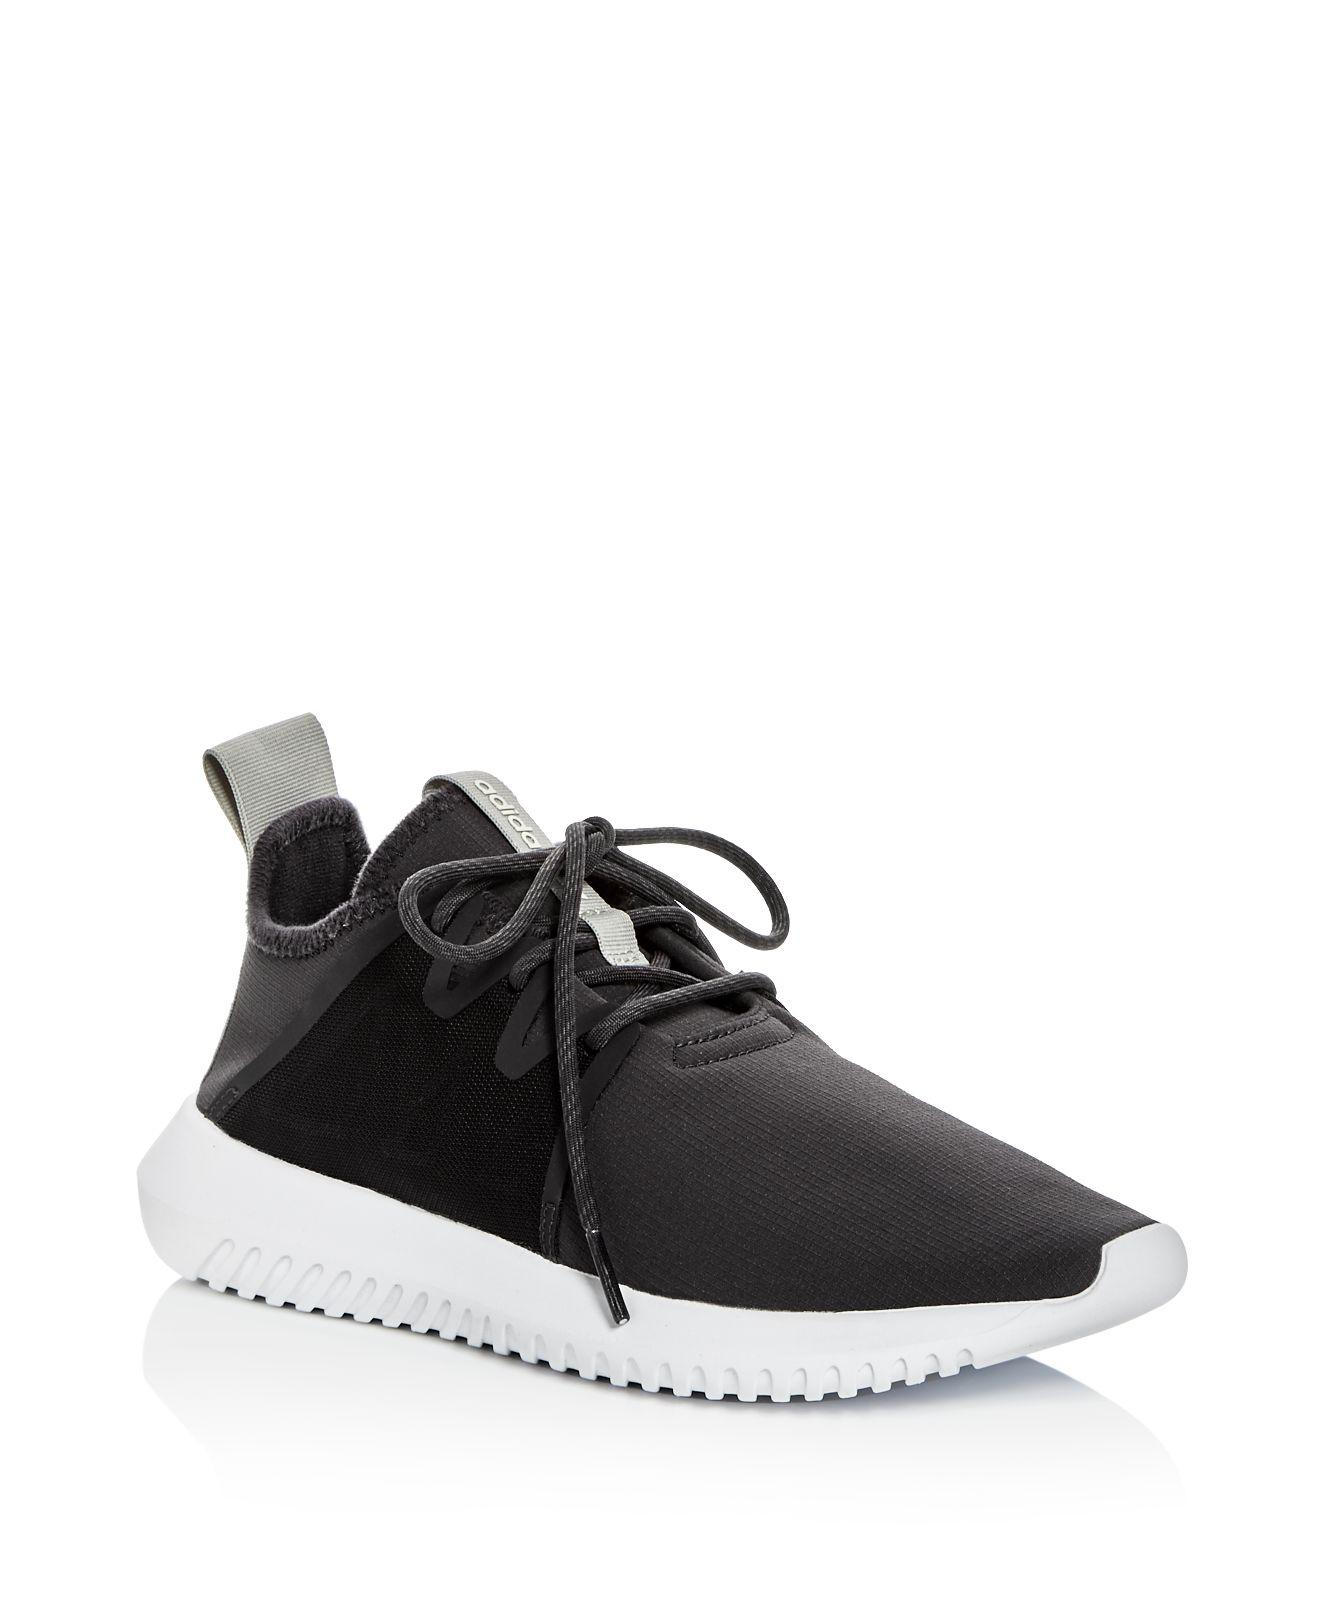 buy online b8cce d0b2f clearance adidas tubular viral womens all black a1a9c f5281